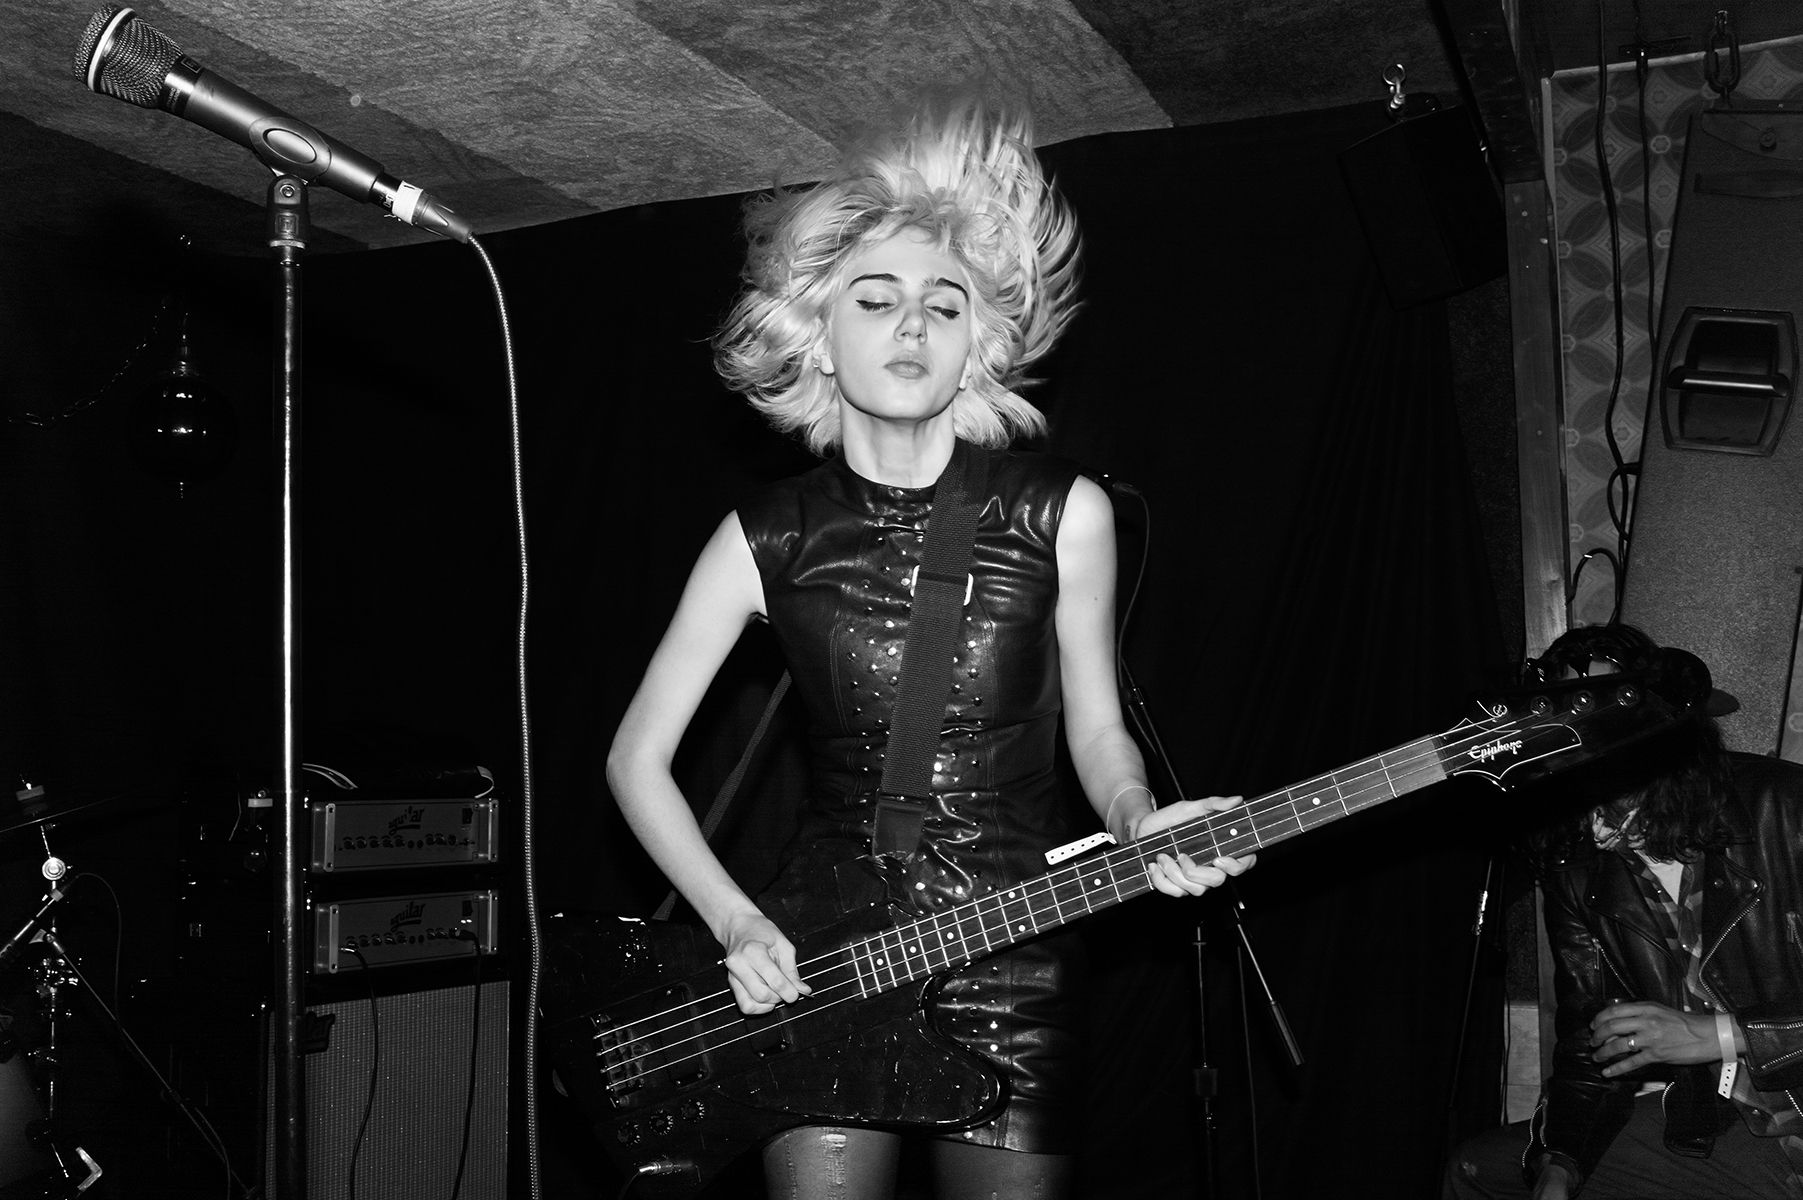 SAINT LAURENT PRIVATE SESSIONS BY HEDI SLIMANE